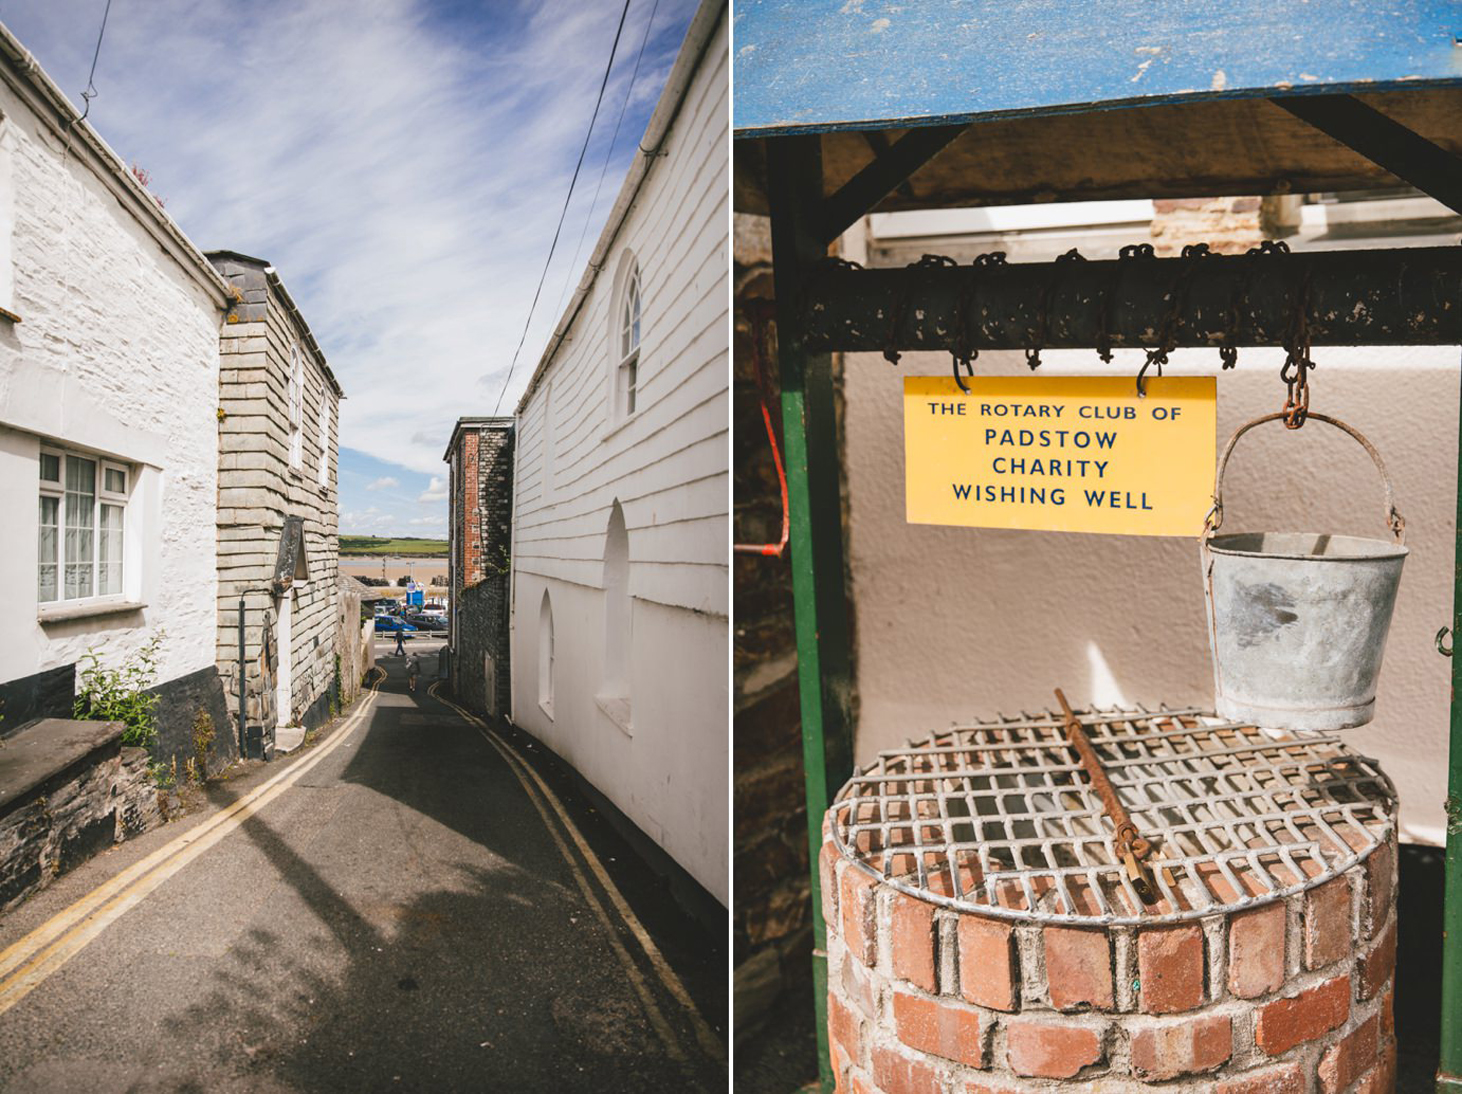 cornwall padstow st ives travel photography saran ann wright 003